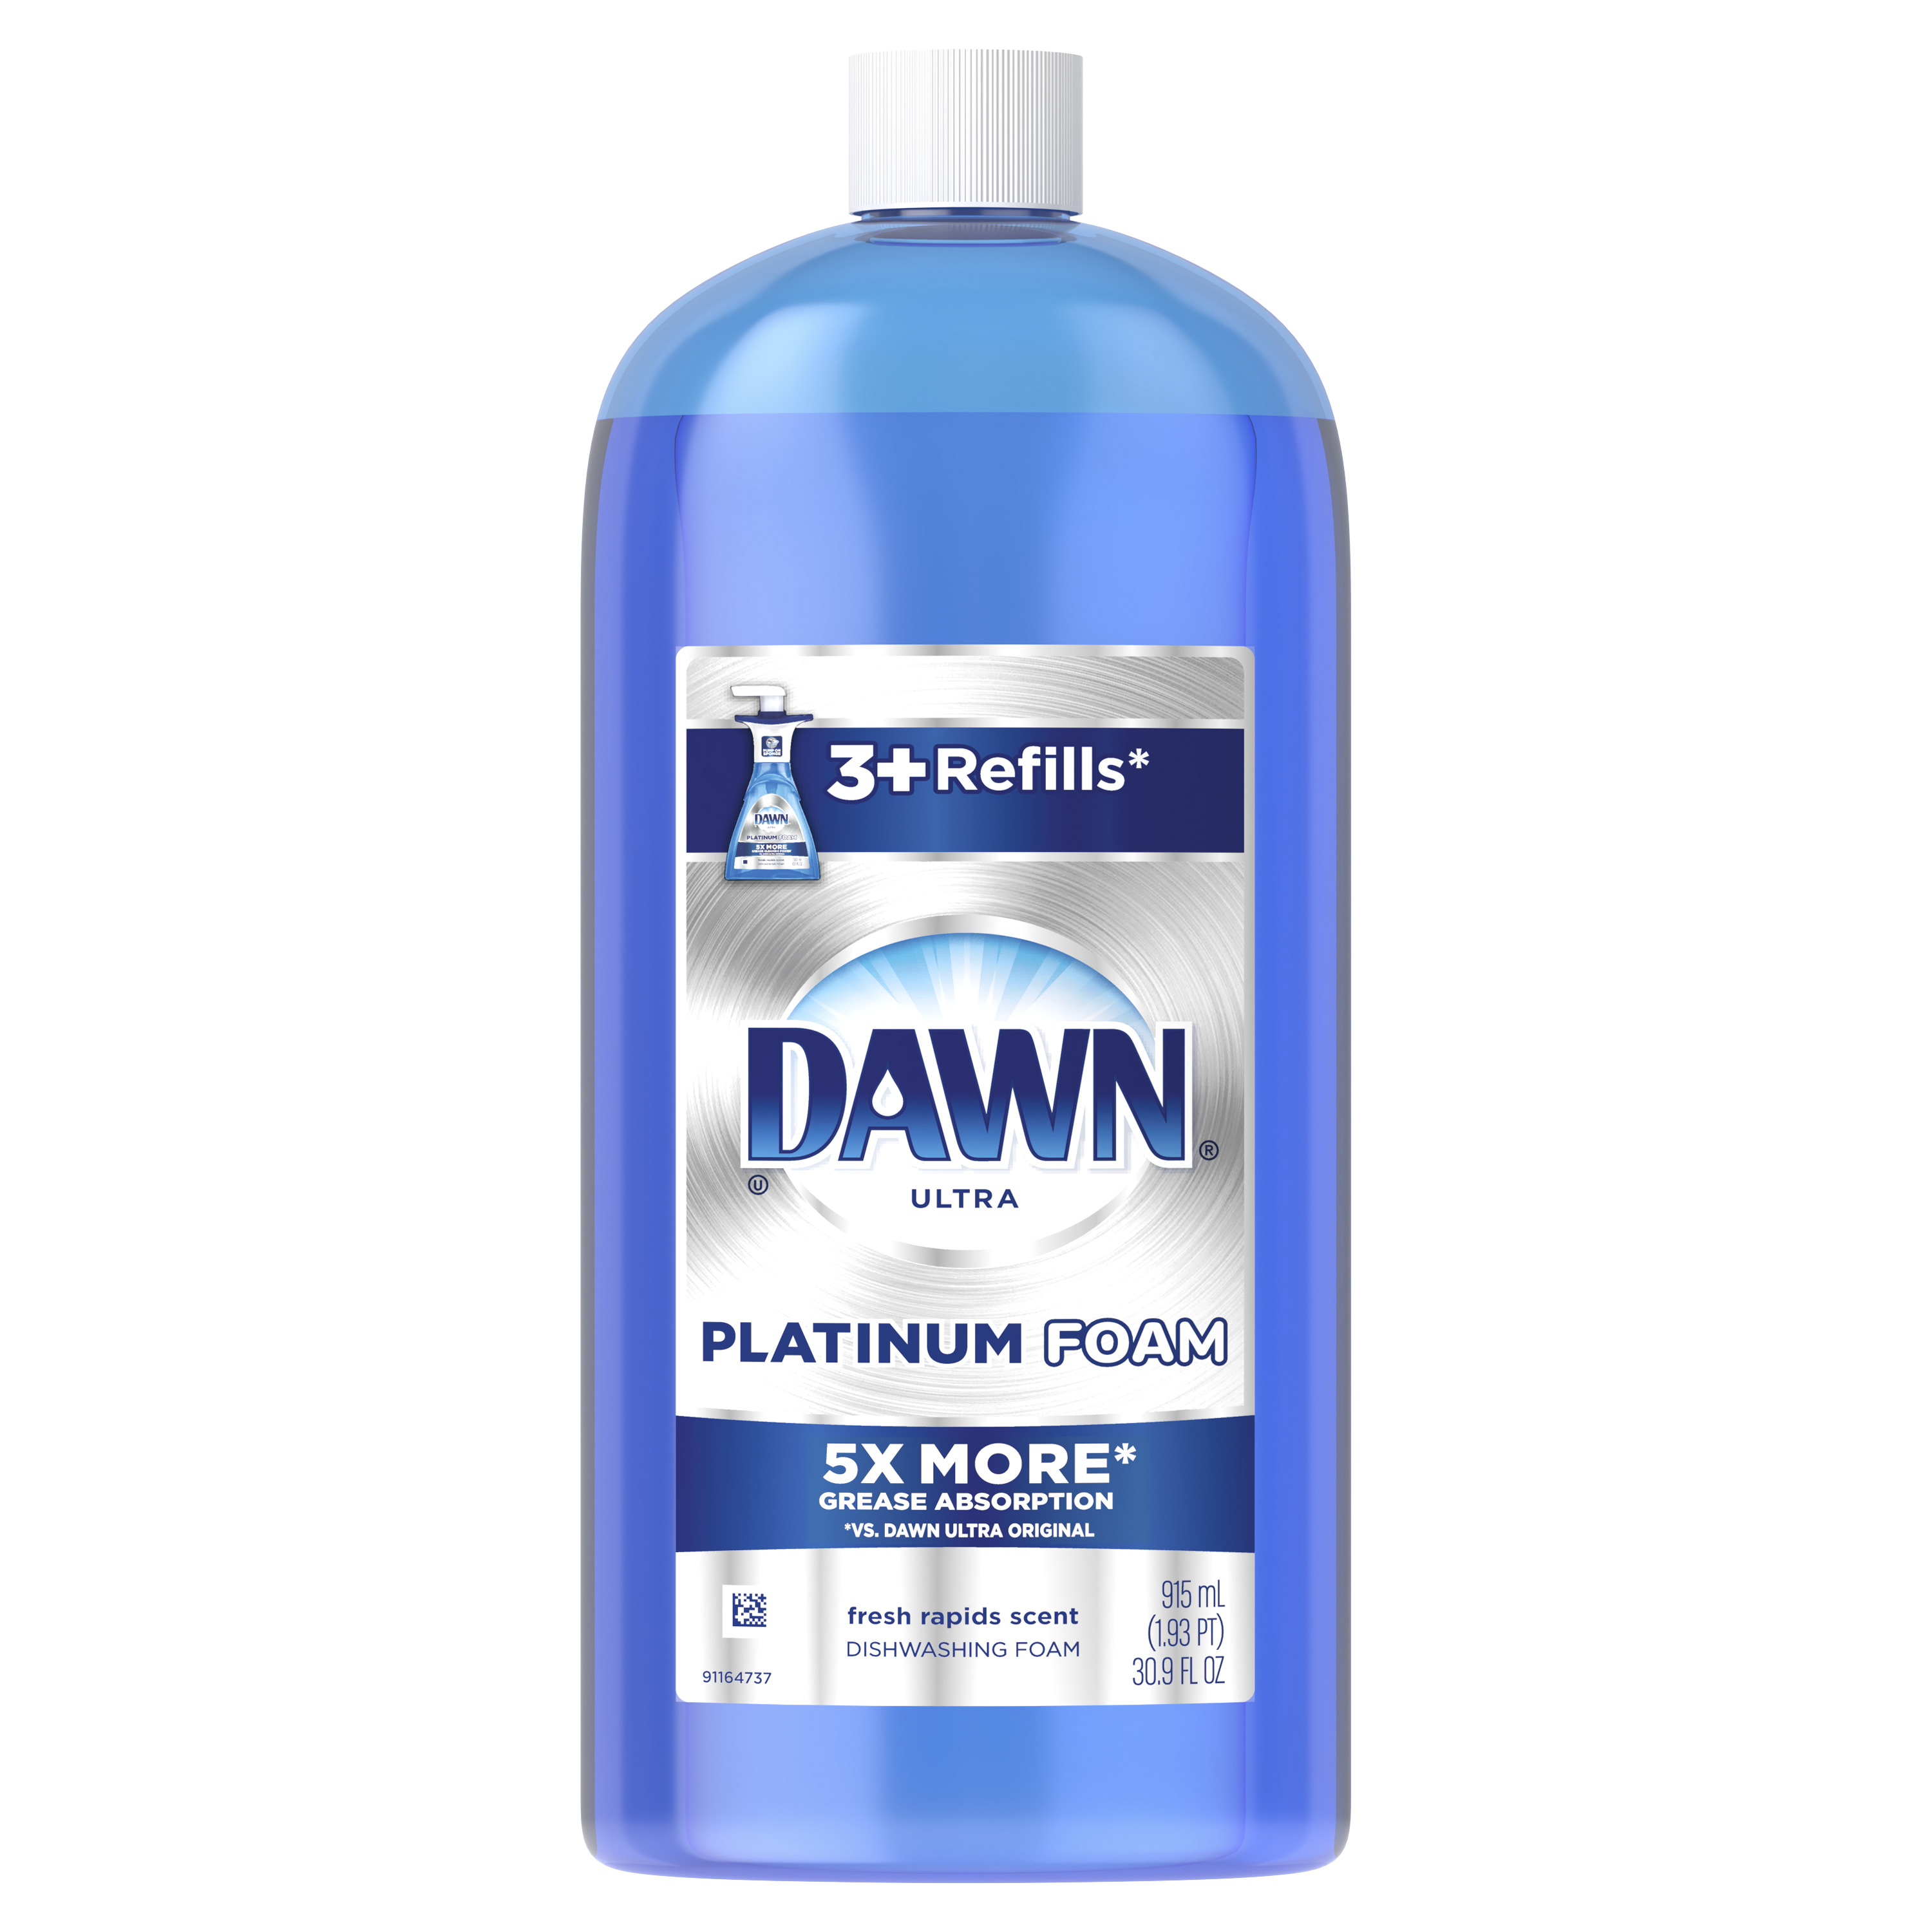 Dawn Ultra Platinum Foam Dishwashing Foam, Fresh Rapids Scent, 30.9 fl oz